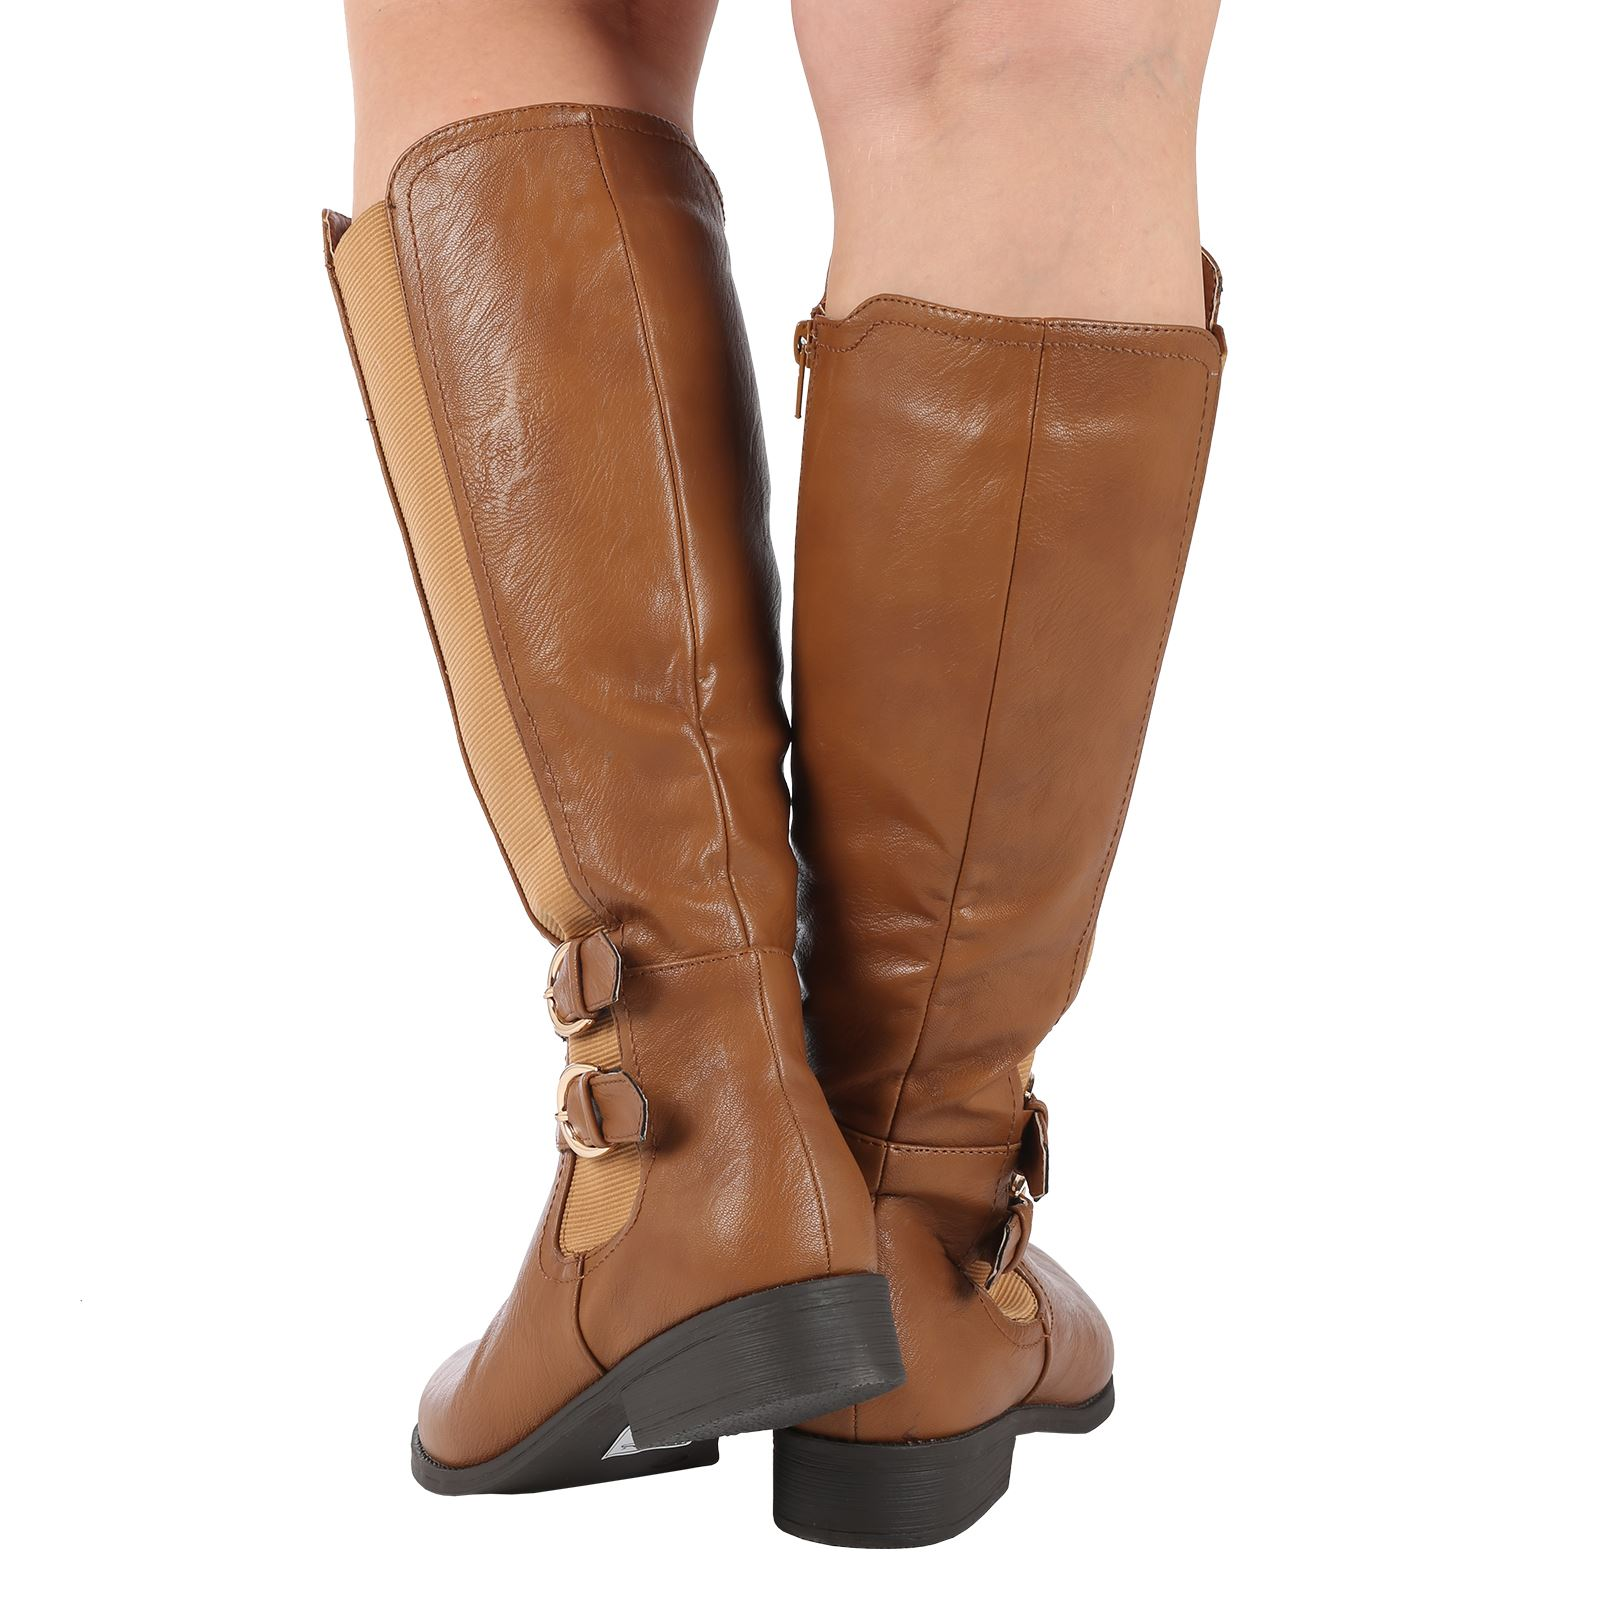 Model Even If There Were Bean Boots Which Actually Would Be Available By 1912, As A Hunting Boot, They Didnt Exactly Go With The Womens Clothing Of The Time  &quotedged In Fur To Stave Off The Chill When